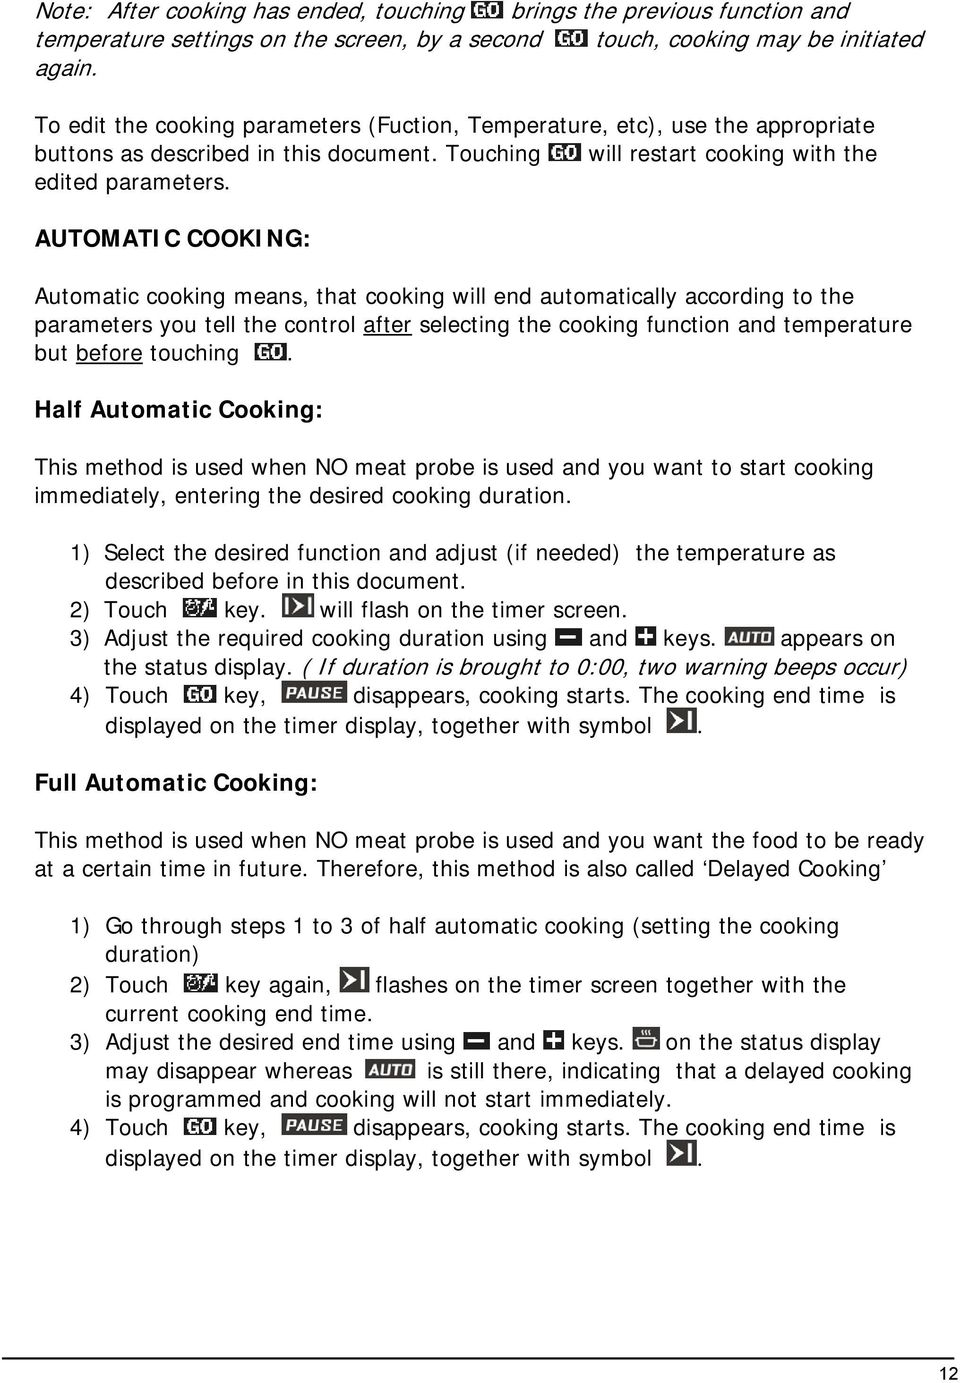 AUTOMATIC COOKING: Automatic cooking means, that cooking will end automatically according to the parameters you tell the control after selecting the cooking function and temperature but before